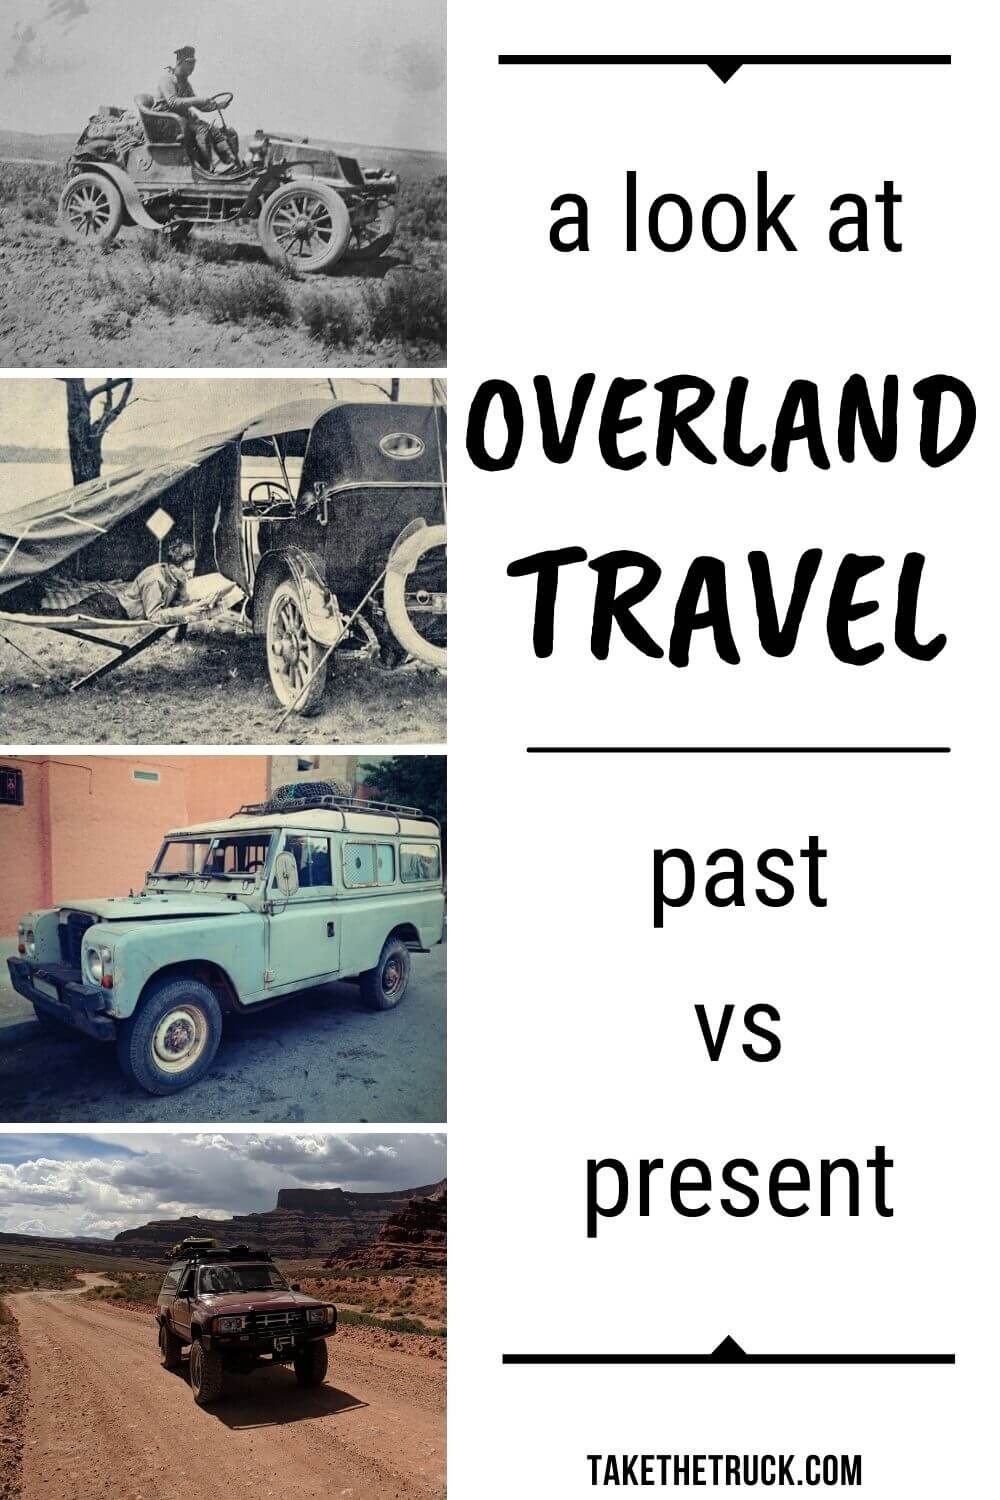 Quick and fun read about the history of overlanding and overland travel in the United States. Helps to answer the question, What is overlanding? and gives some overlanding basics for beginners.